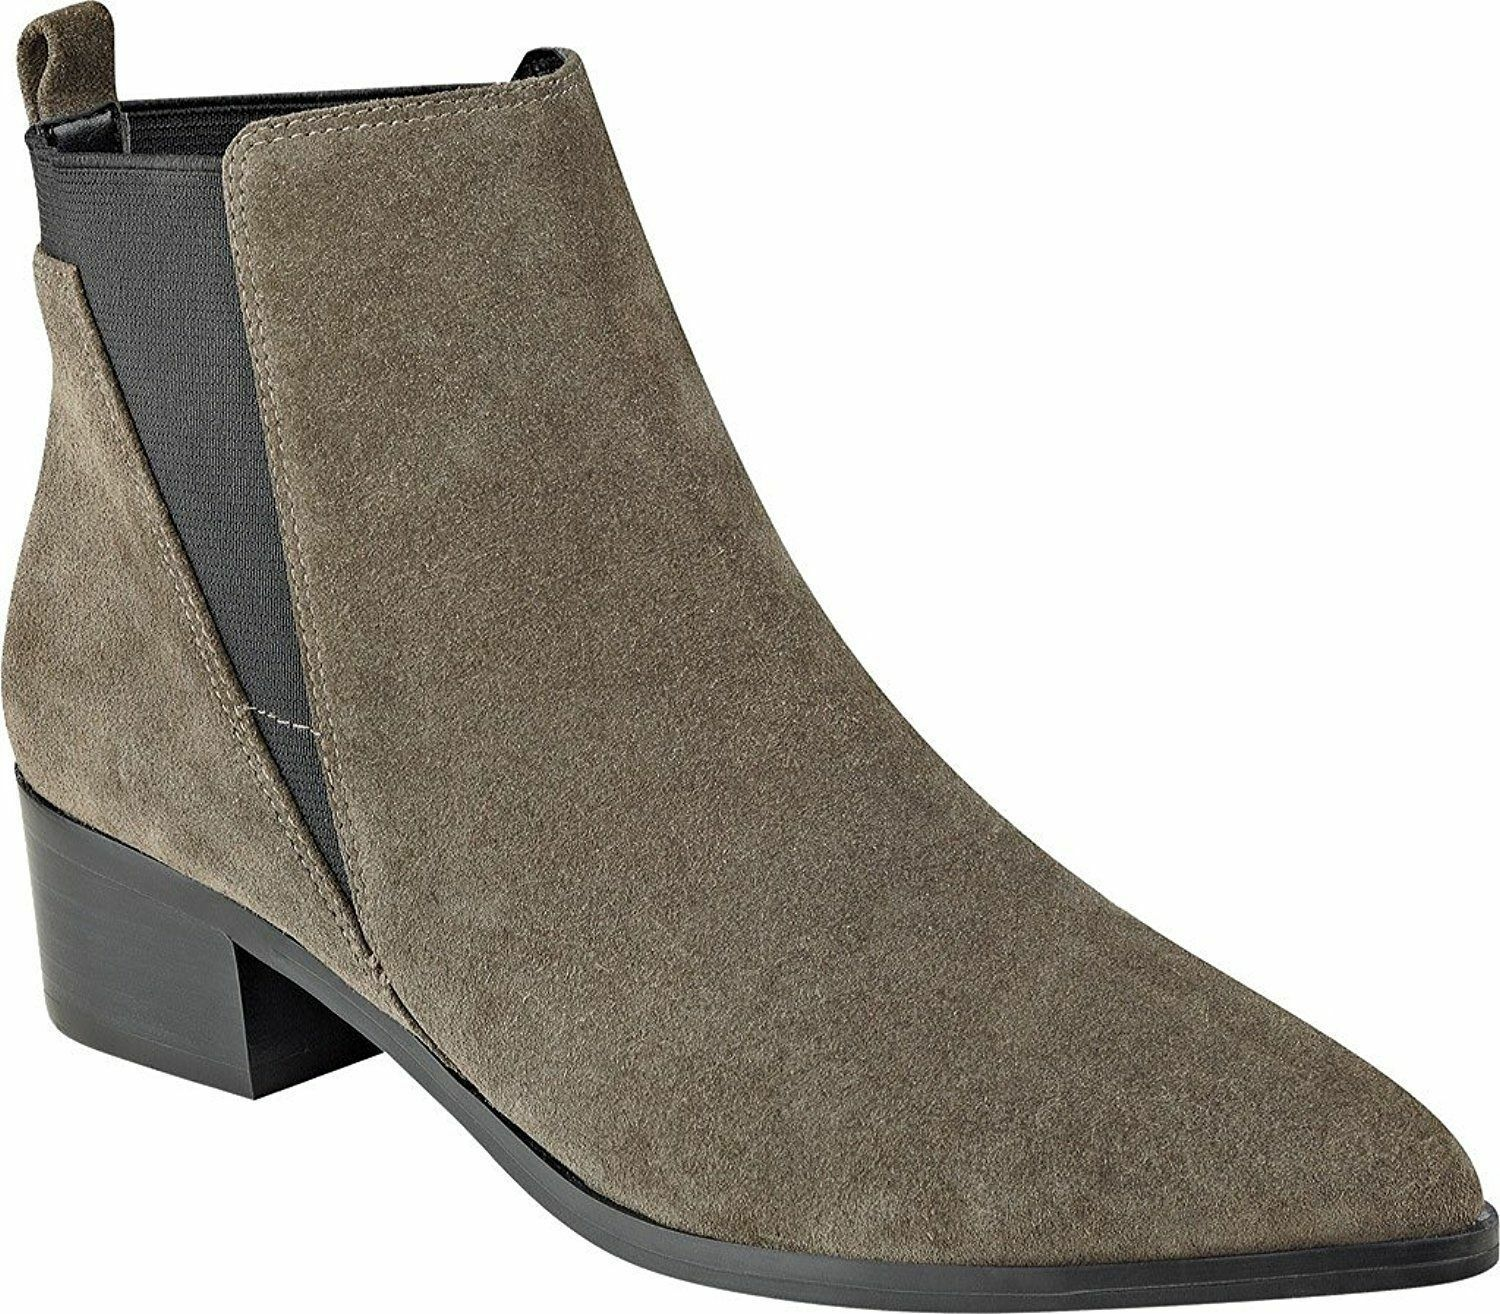 NEW - MARC FISHER Women's 'IGNITE' Grey LEATHER POINTED TOE ANKLE  BOOTS - 10 M